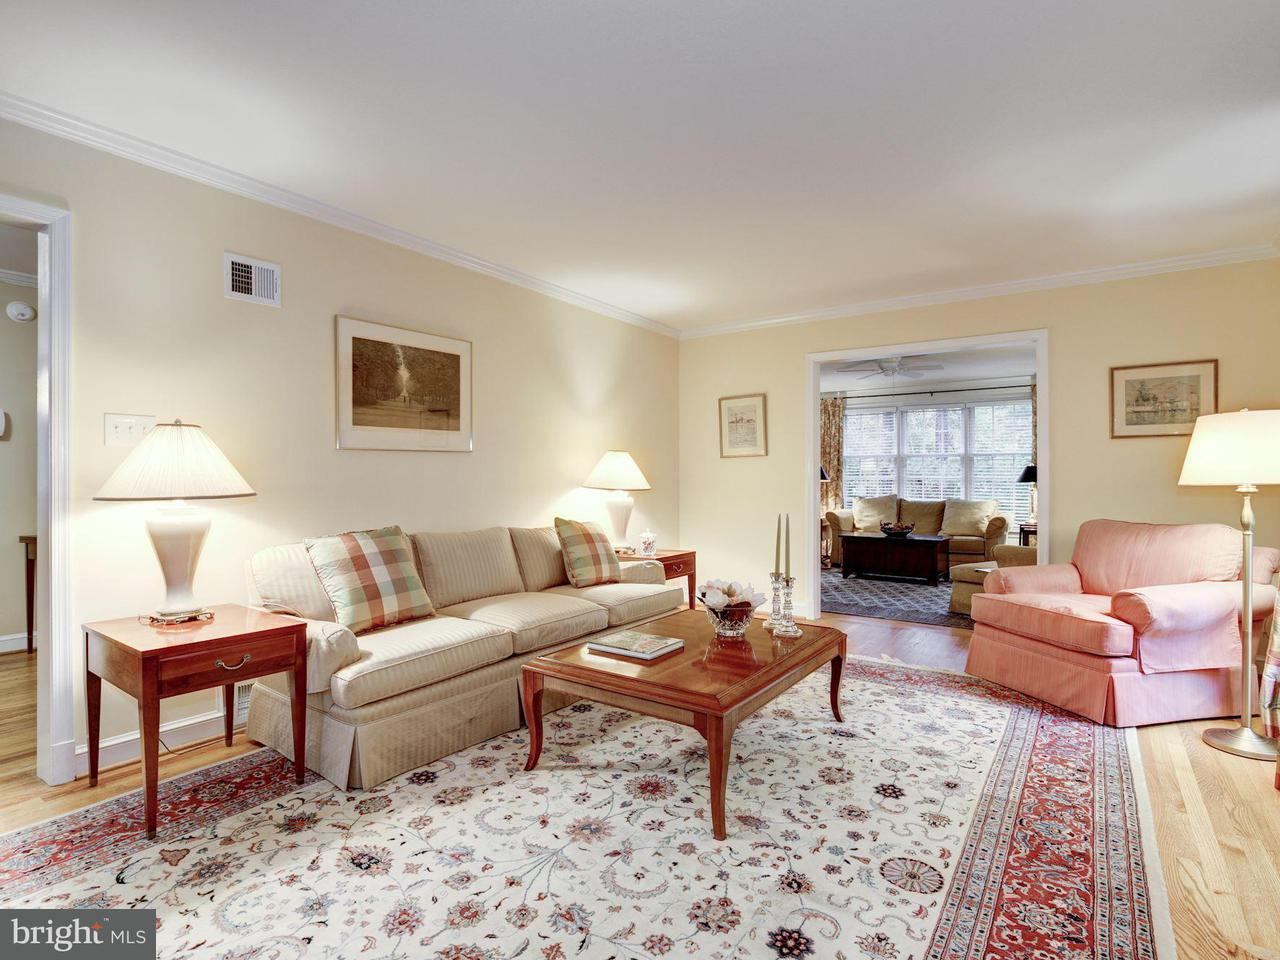 Additional photo for property listing at 4117 48th St NW  Washington, District Of Columbia 20016 United States